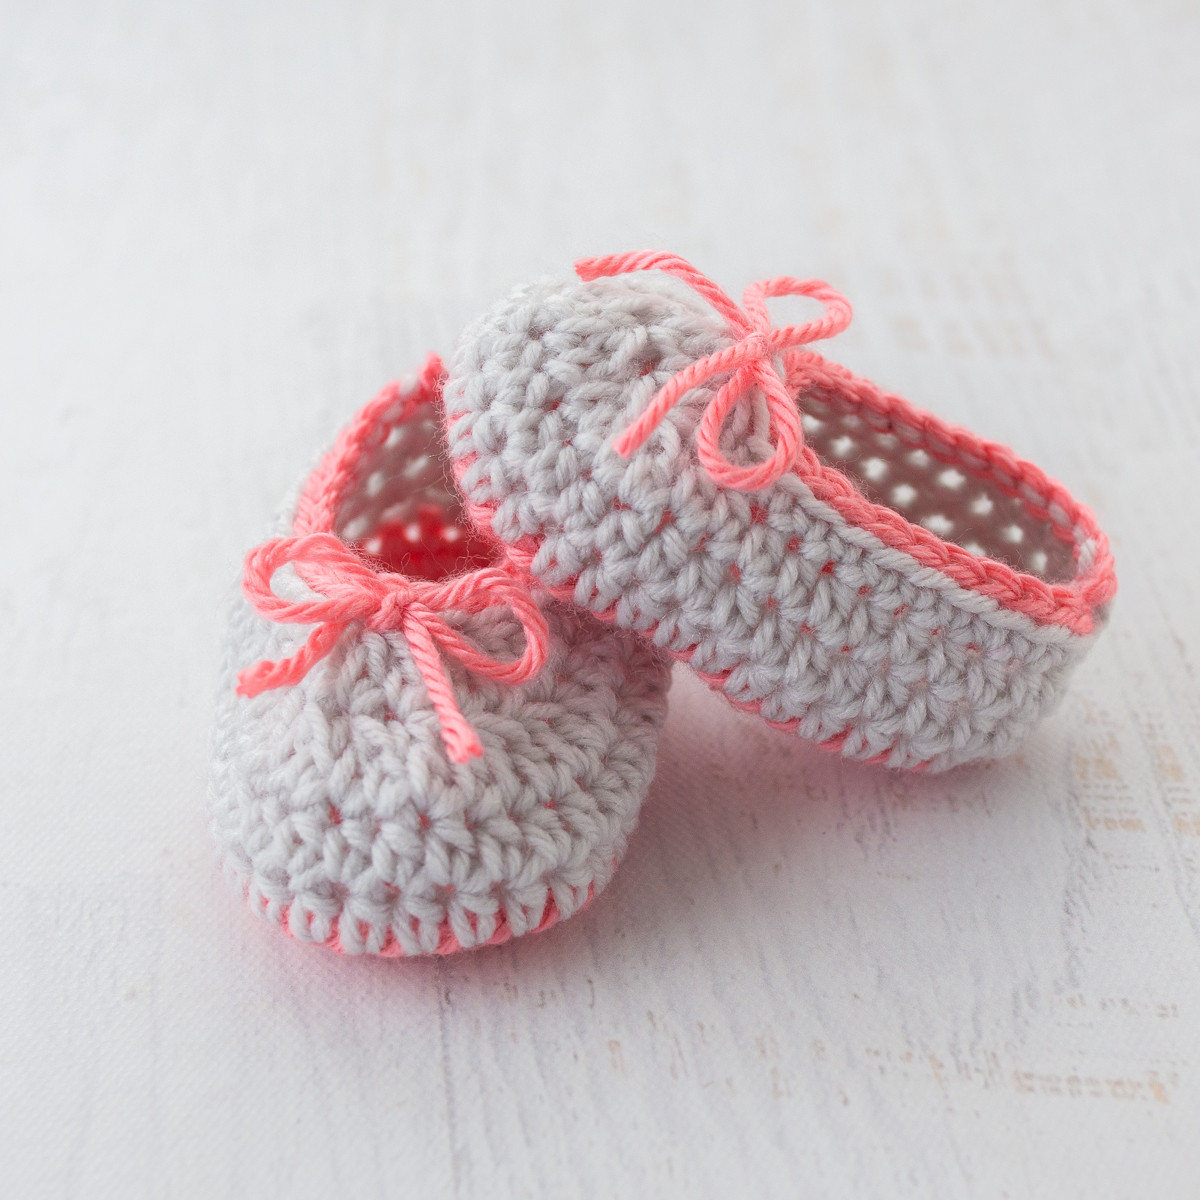 Crochet Baby Shoes Awesome Neon Trim Baby Slippers – Free Crochet Pattern Of Delightful 42 Models Crochet Baby Shoes